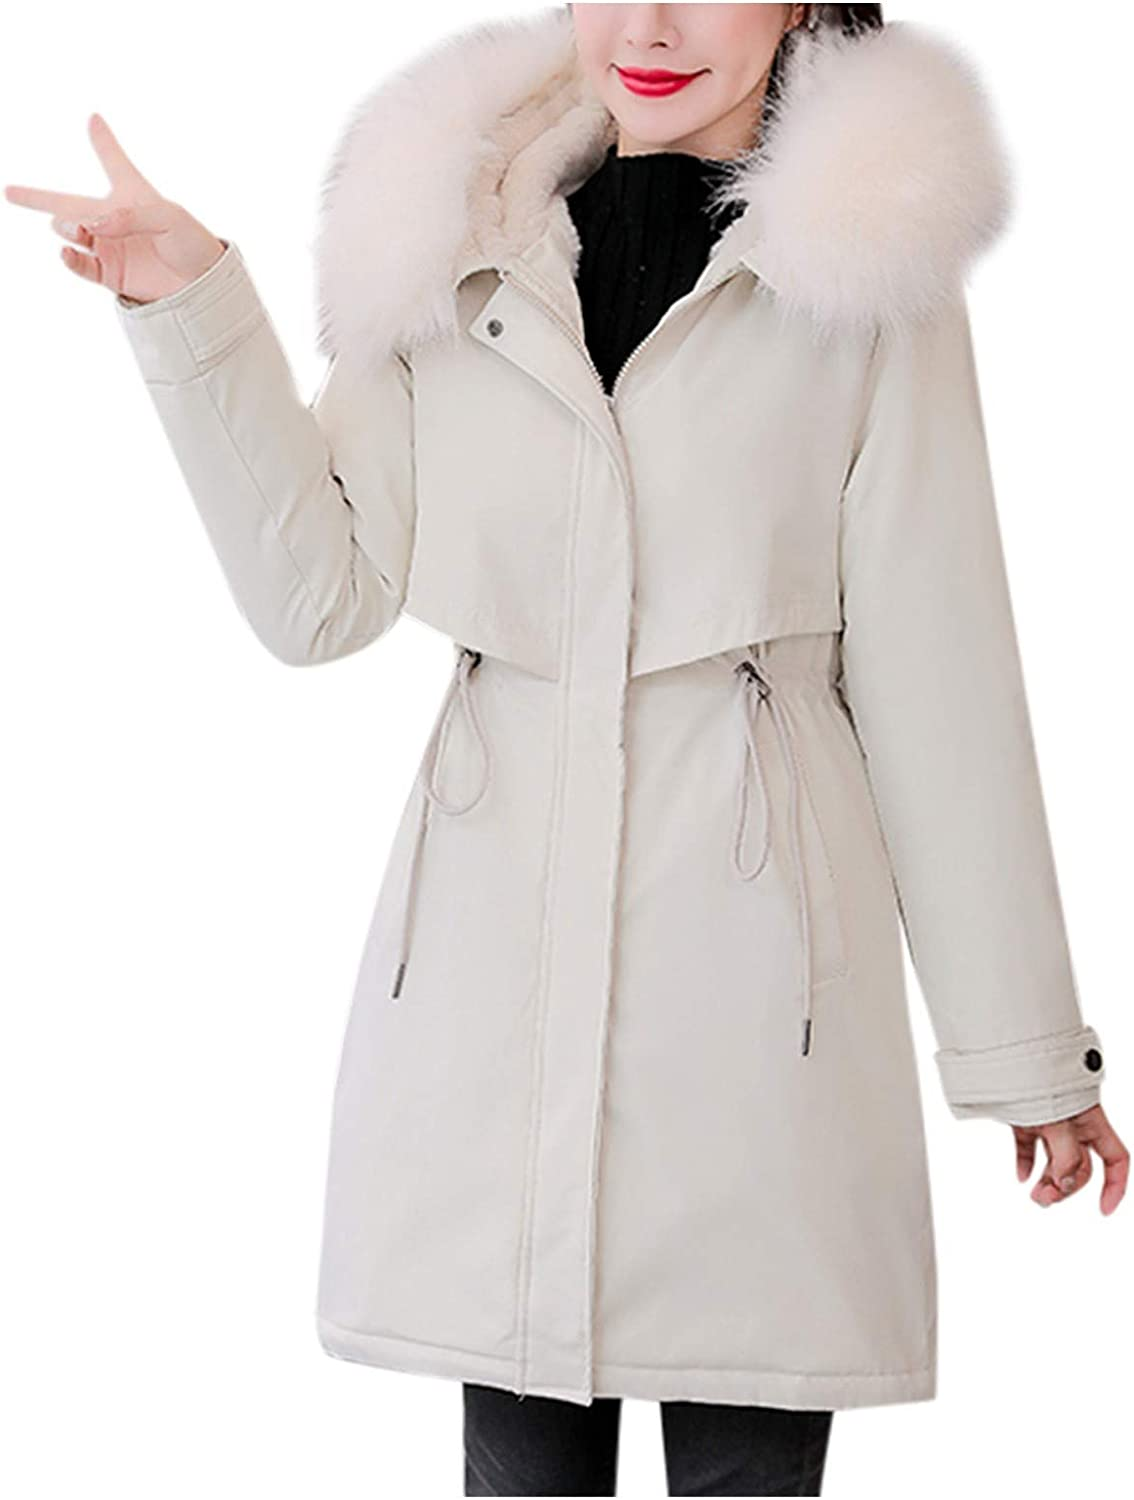 HGWXX7 Womens Outerwear Fashion Zip Up Jacket Purchase Fu Philadelphia Mall with Faux Parka